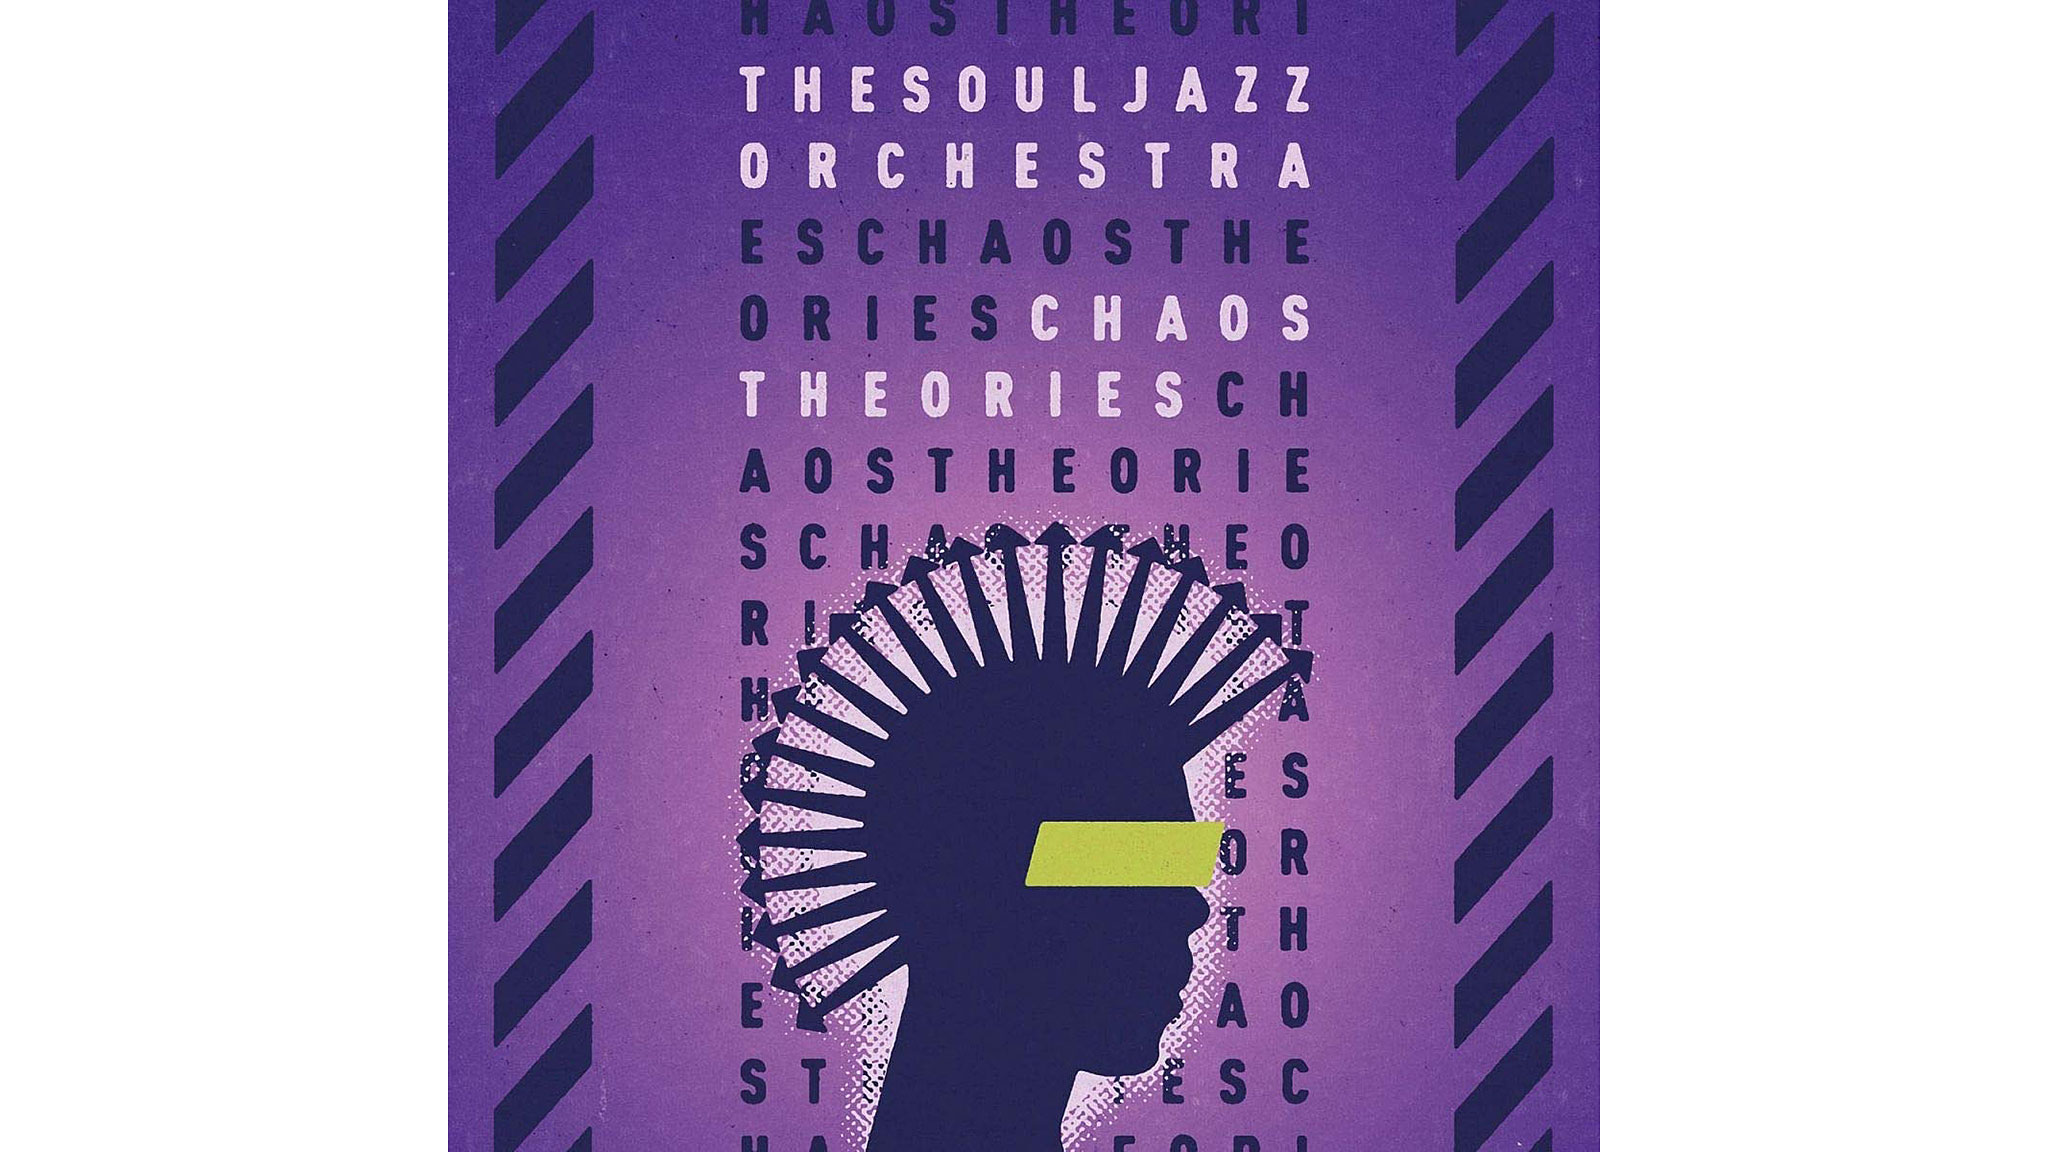 The Souljazz Orchestra: Chaos Theories — a punchy album